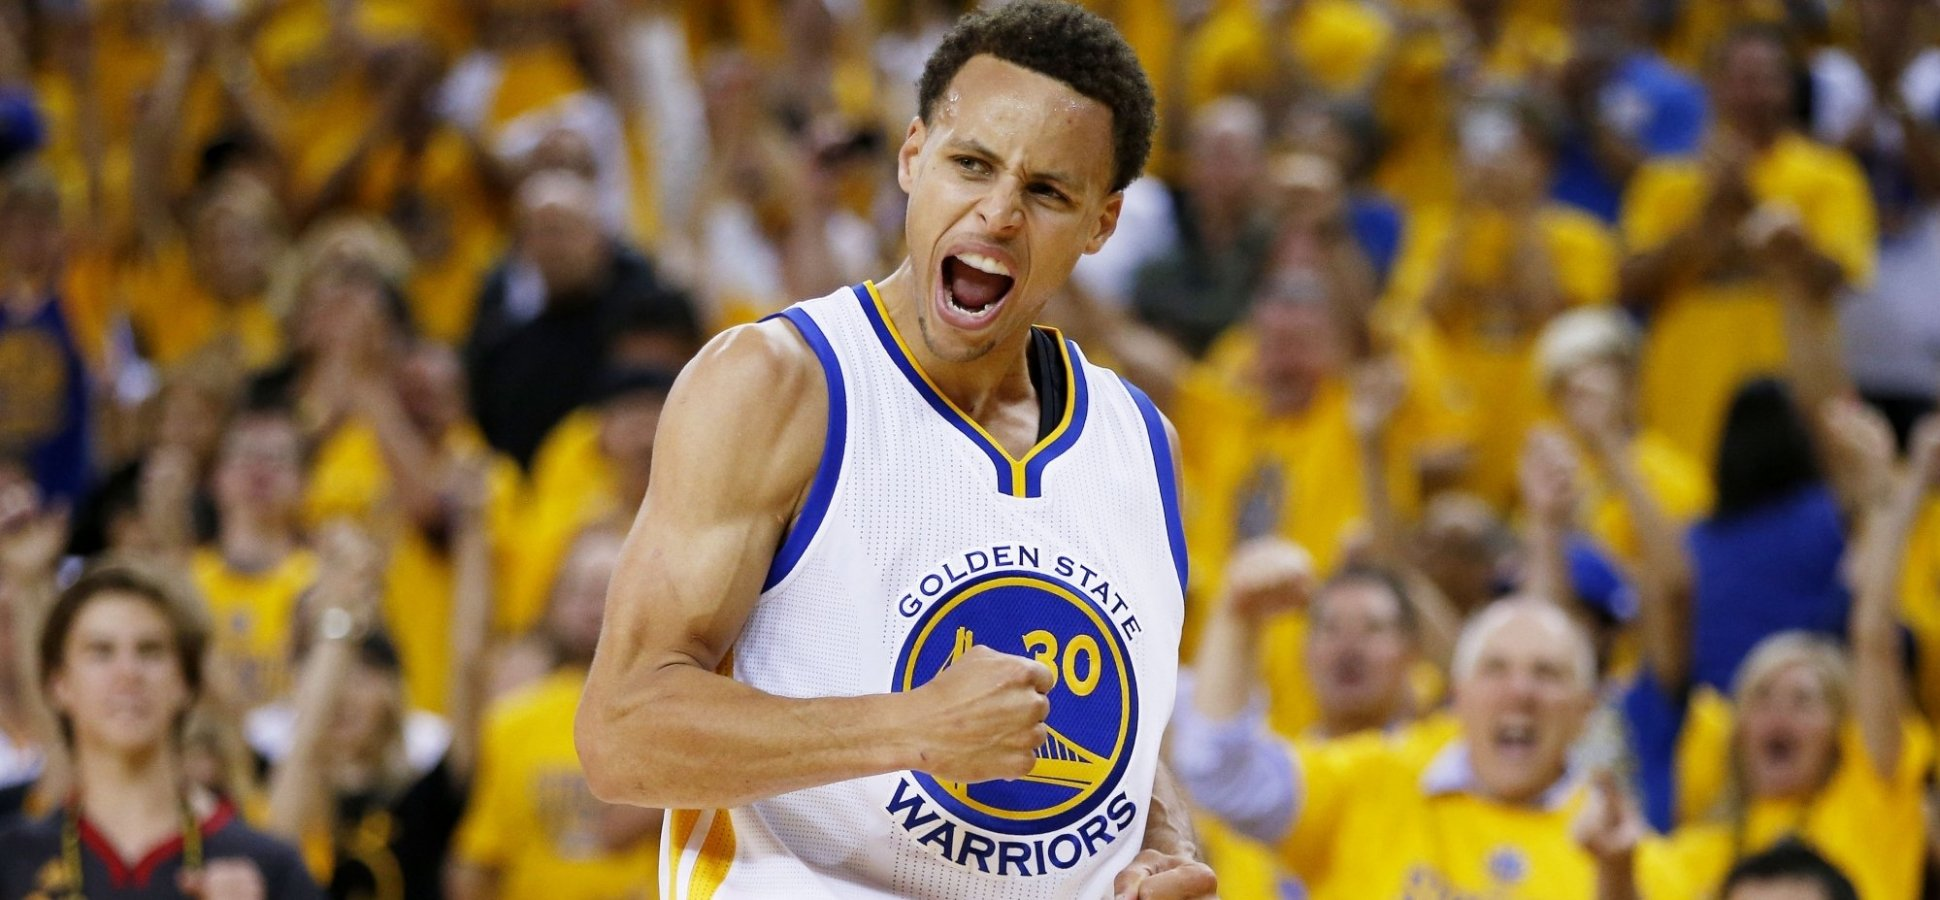 Steph Curry, the Best Player in the NBA, Needed These 5 Words to Overcome Self-Doubt